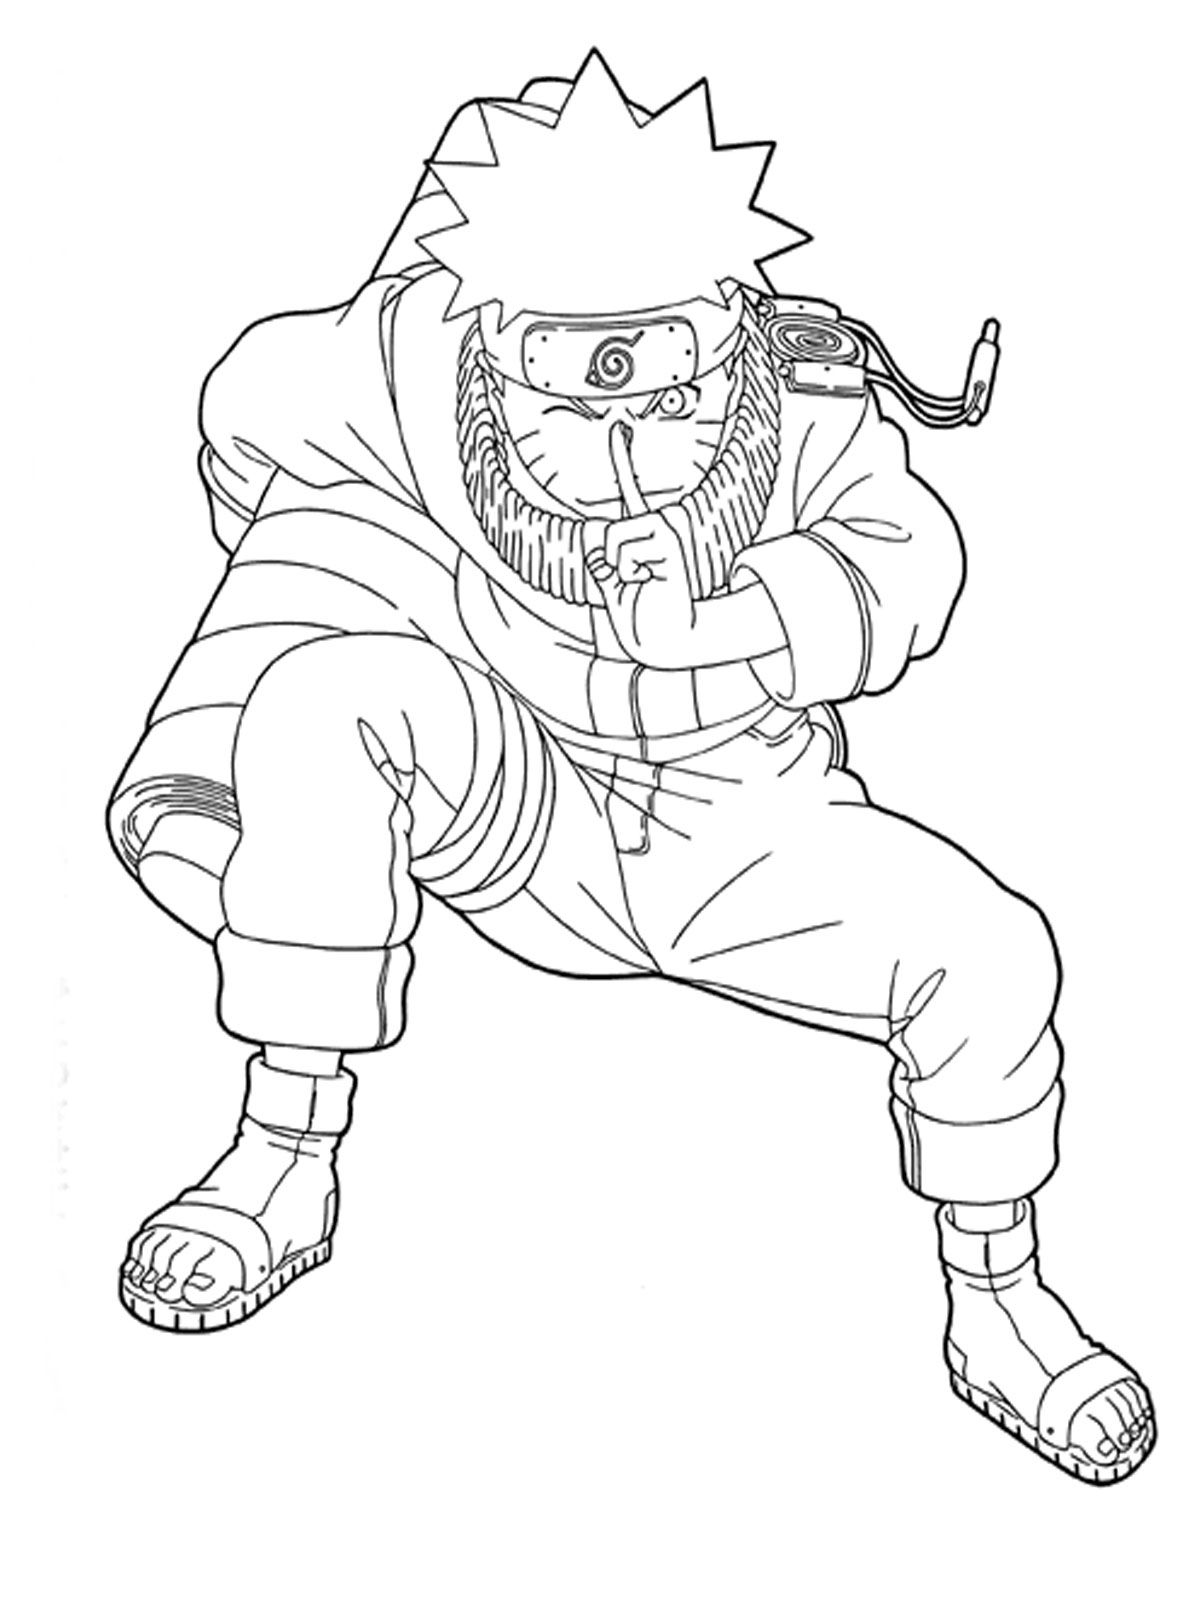 Naruto Printable Coloring Pages http//freecoloringpage